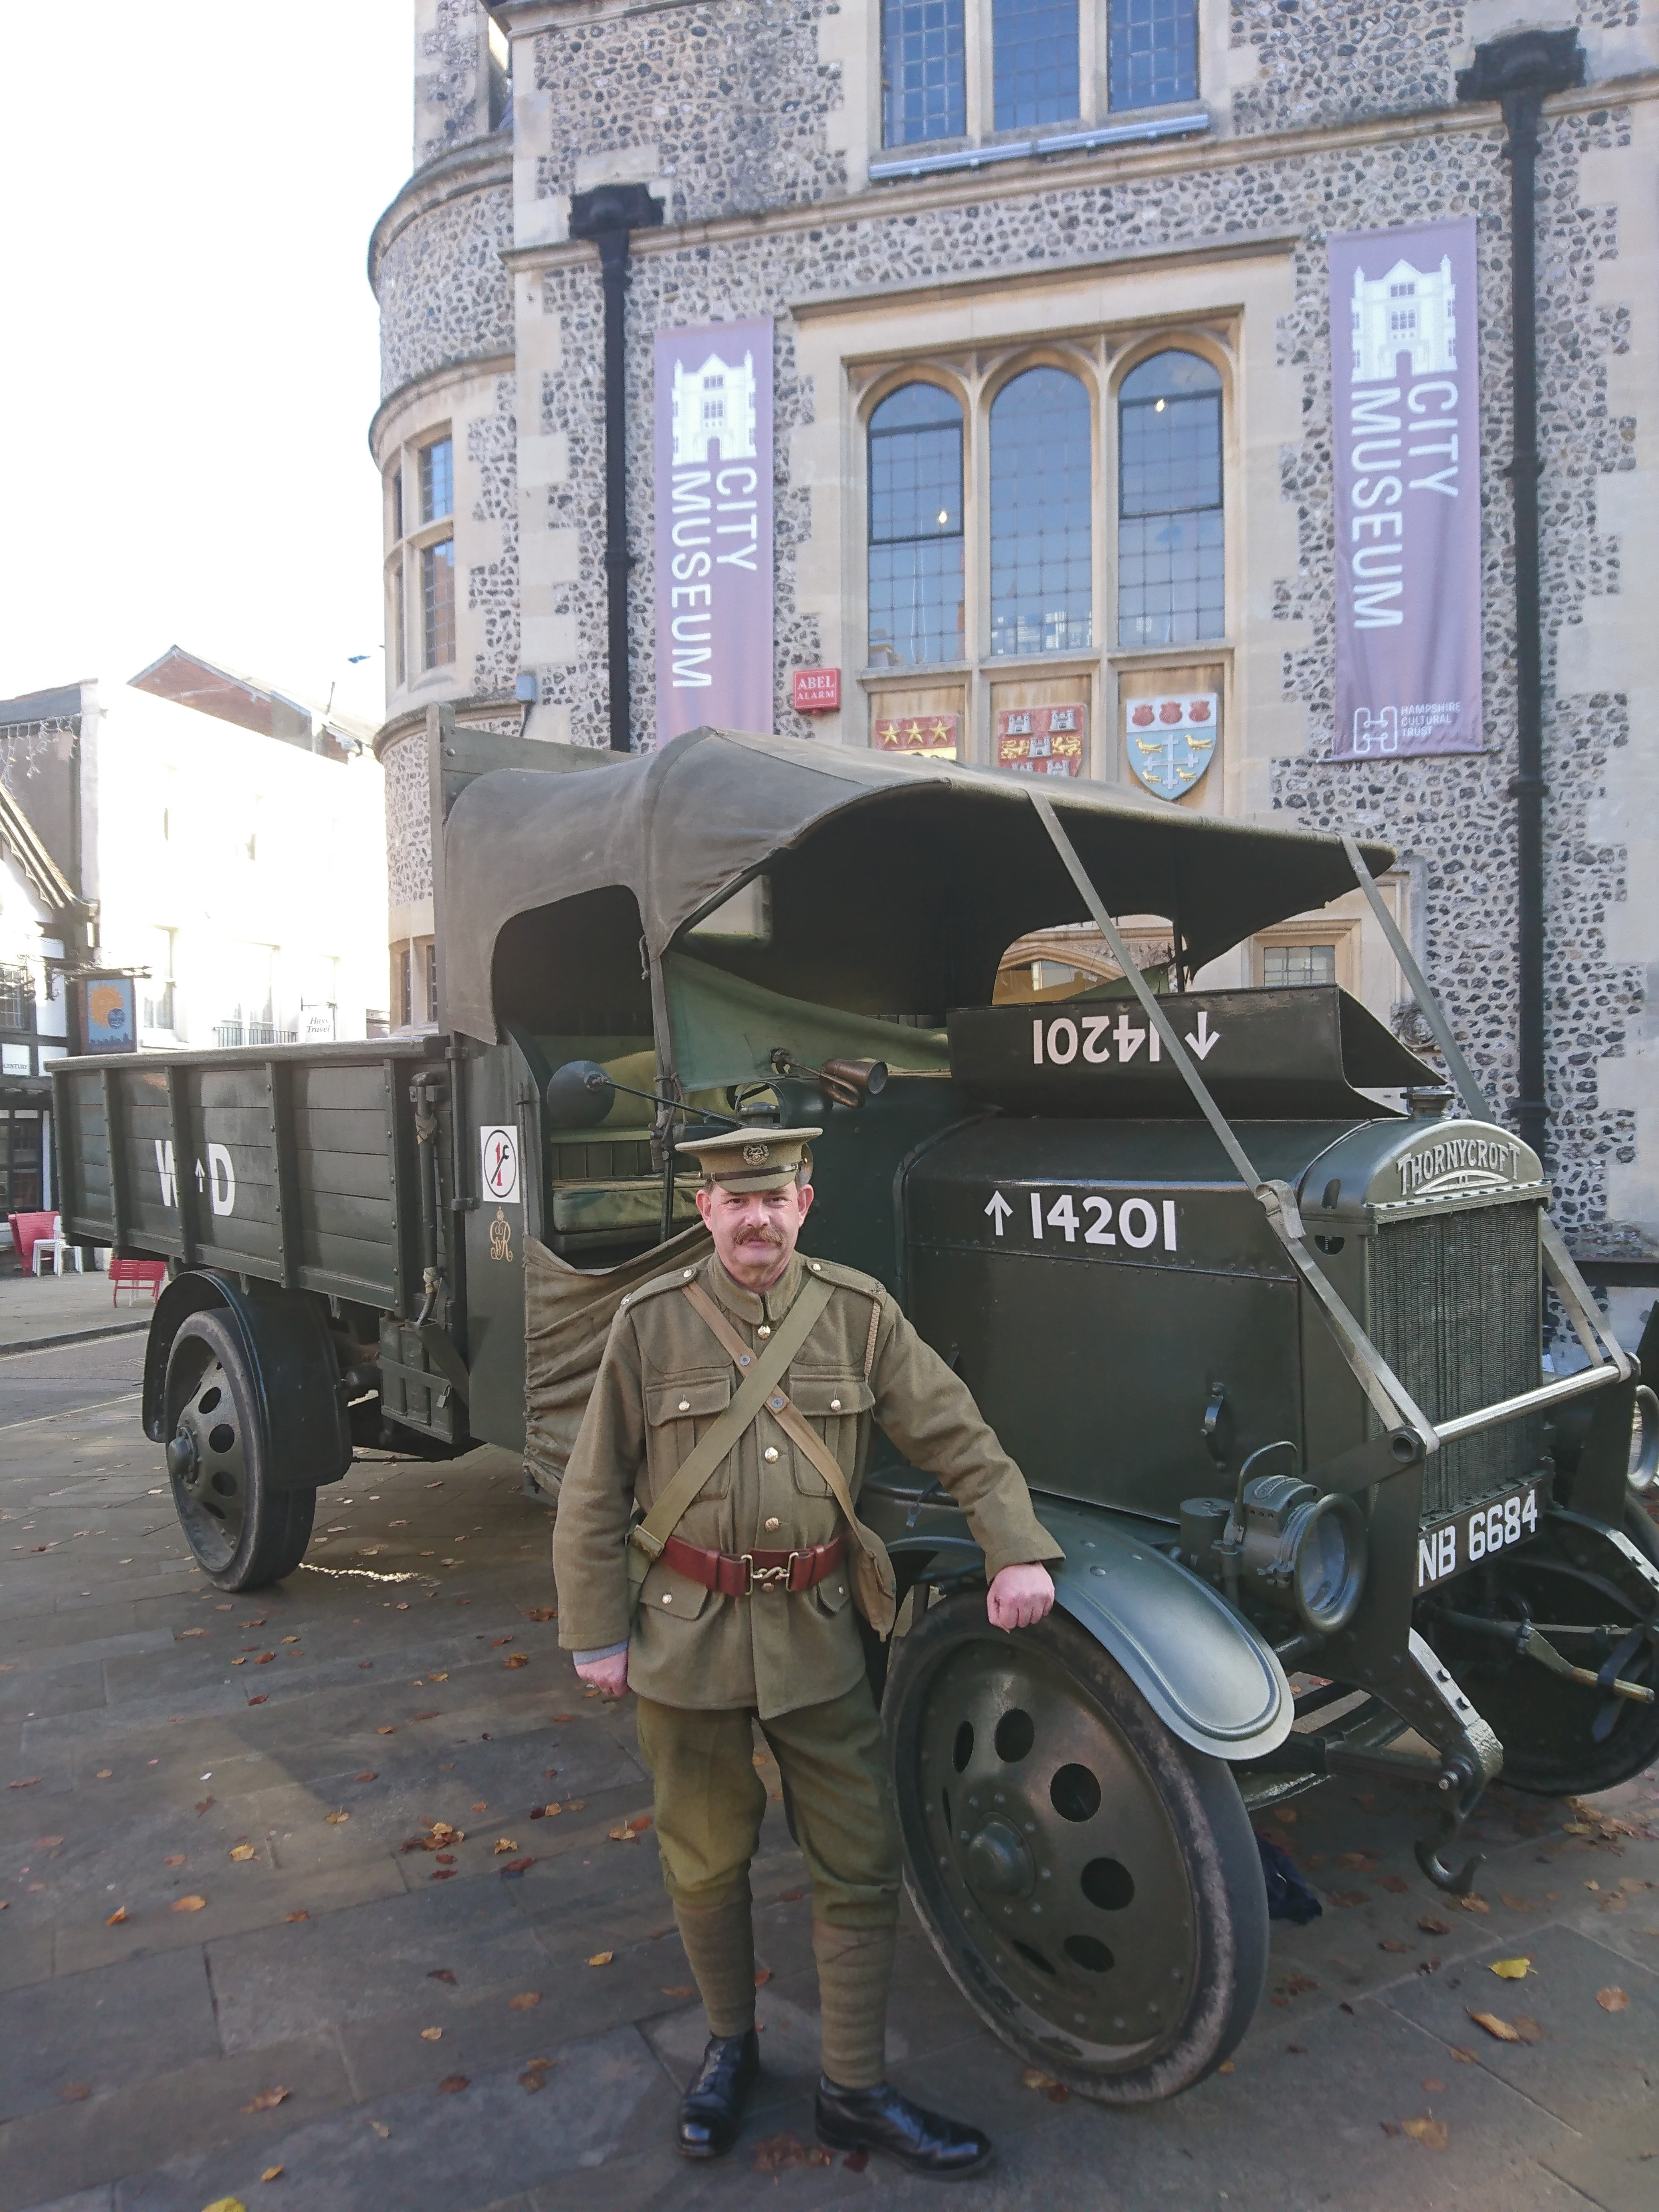 The First World War at City Museum